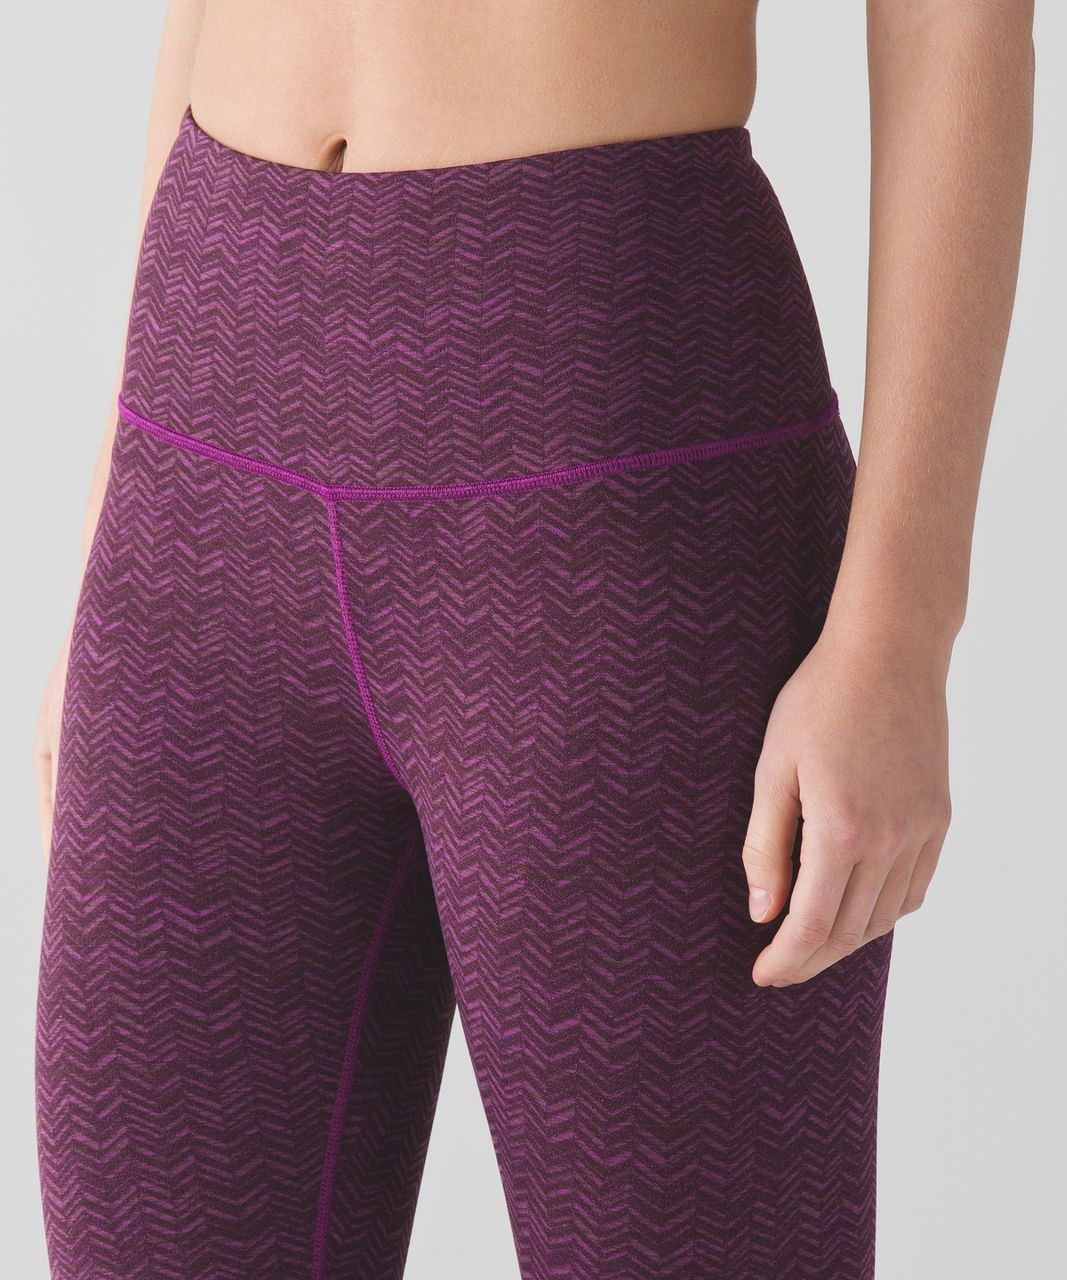 Lululemon Transcend Crop - Rio Mist Pink Paradise Red Grape / Pink Paradise / Red Grape